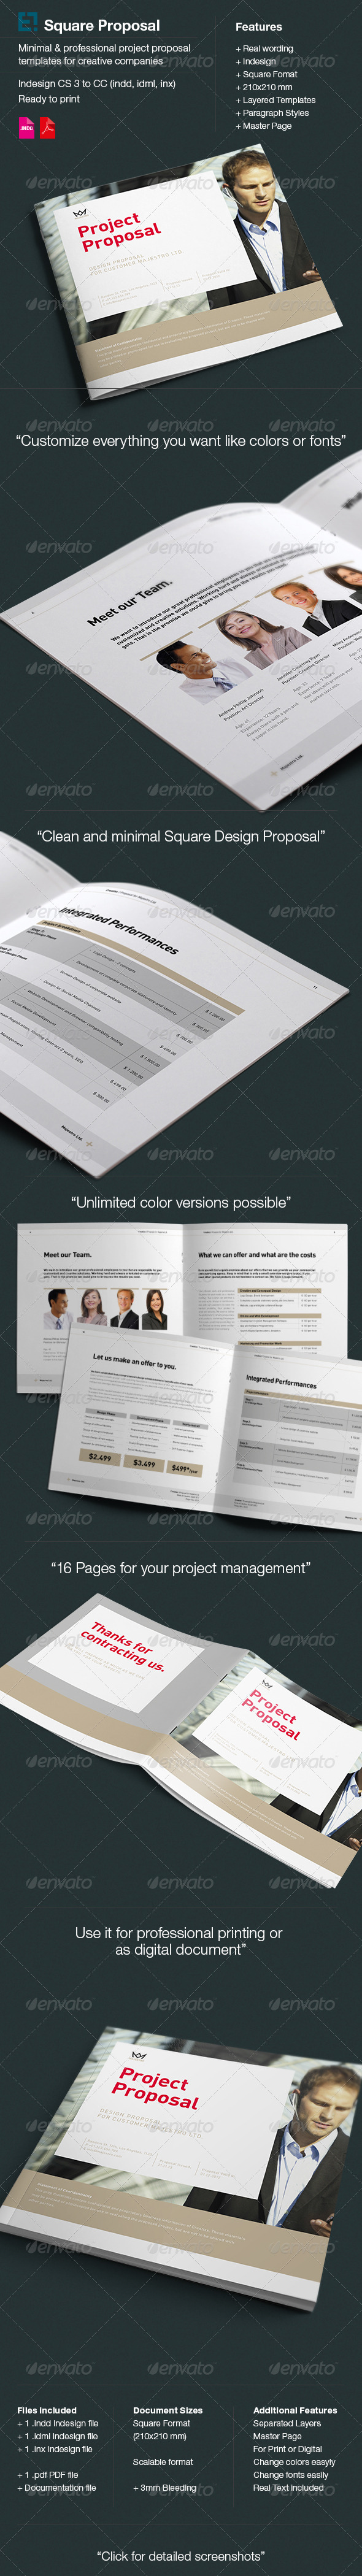 GraphicRiver Square Proposal Template 6210199